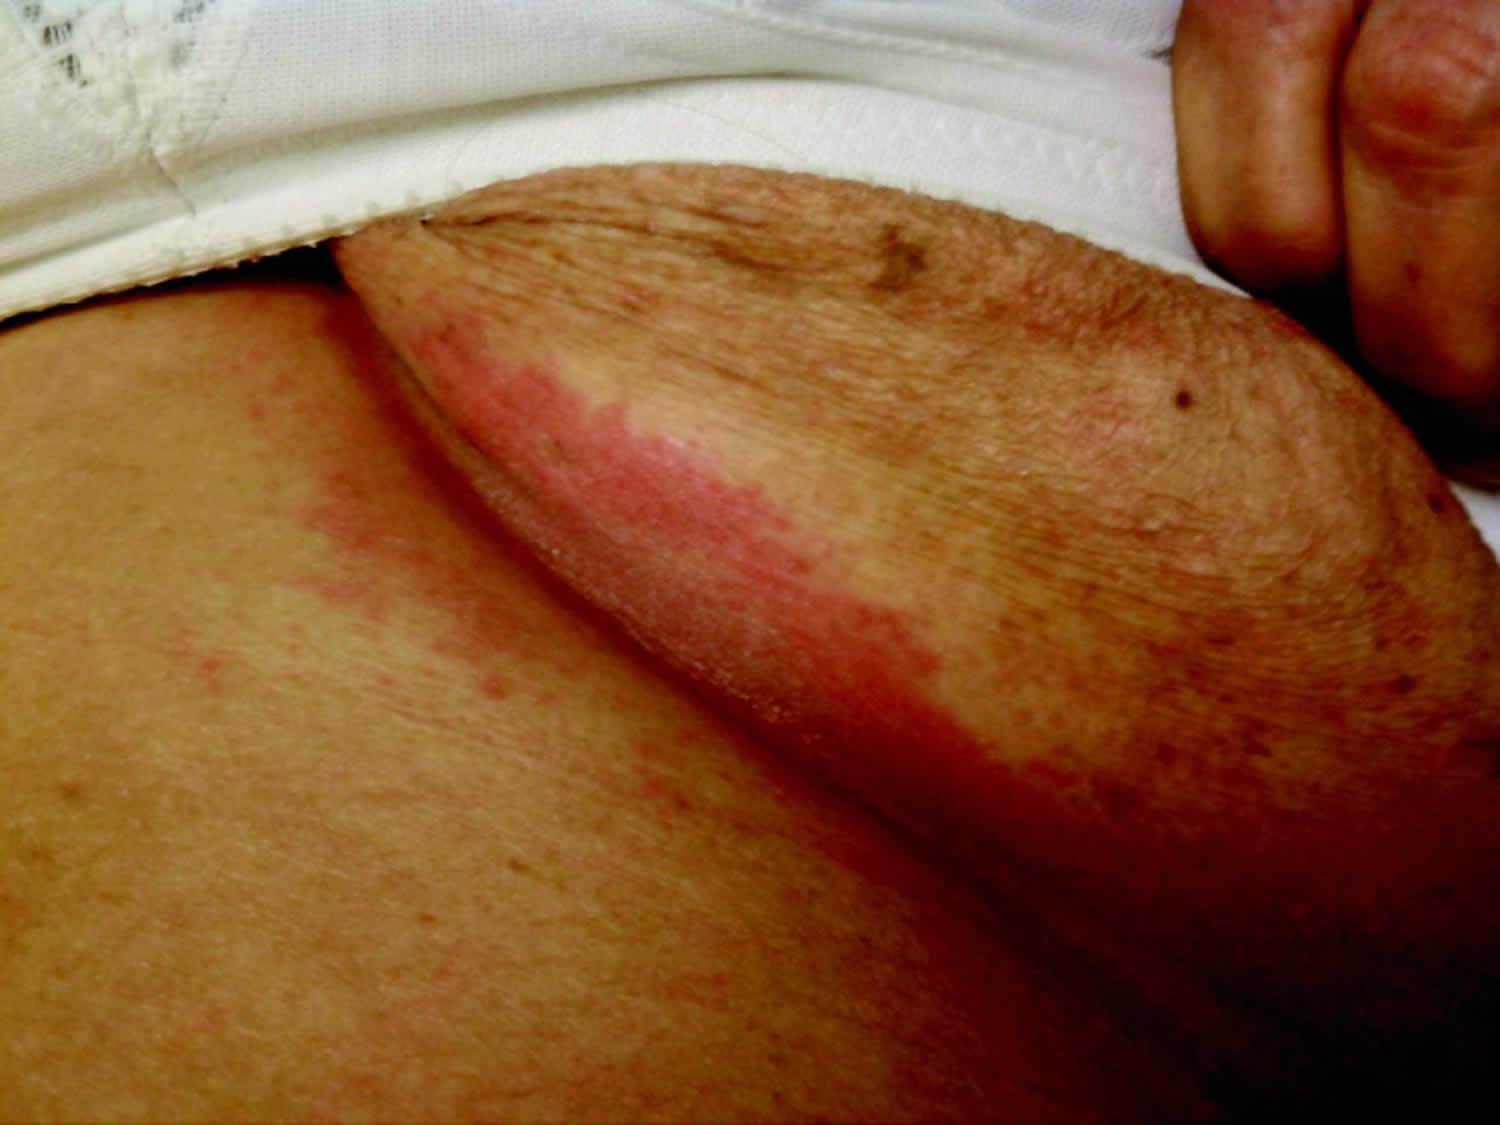 gluteal cleft psoriasis treatment)